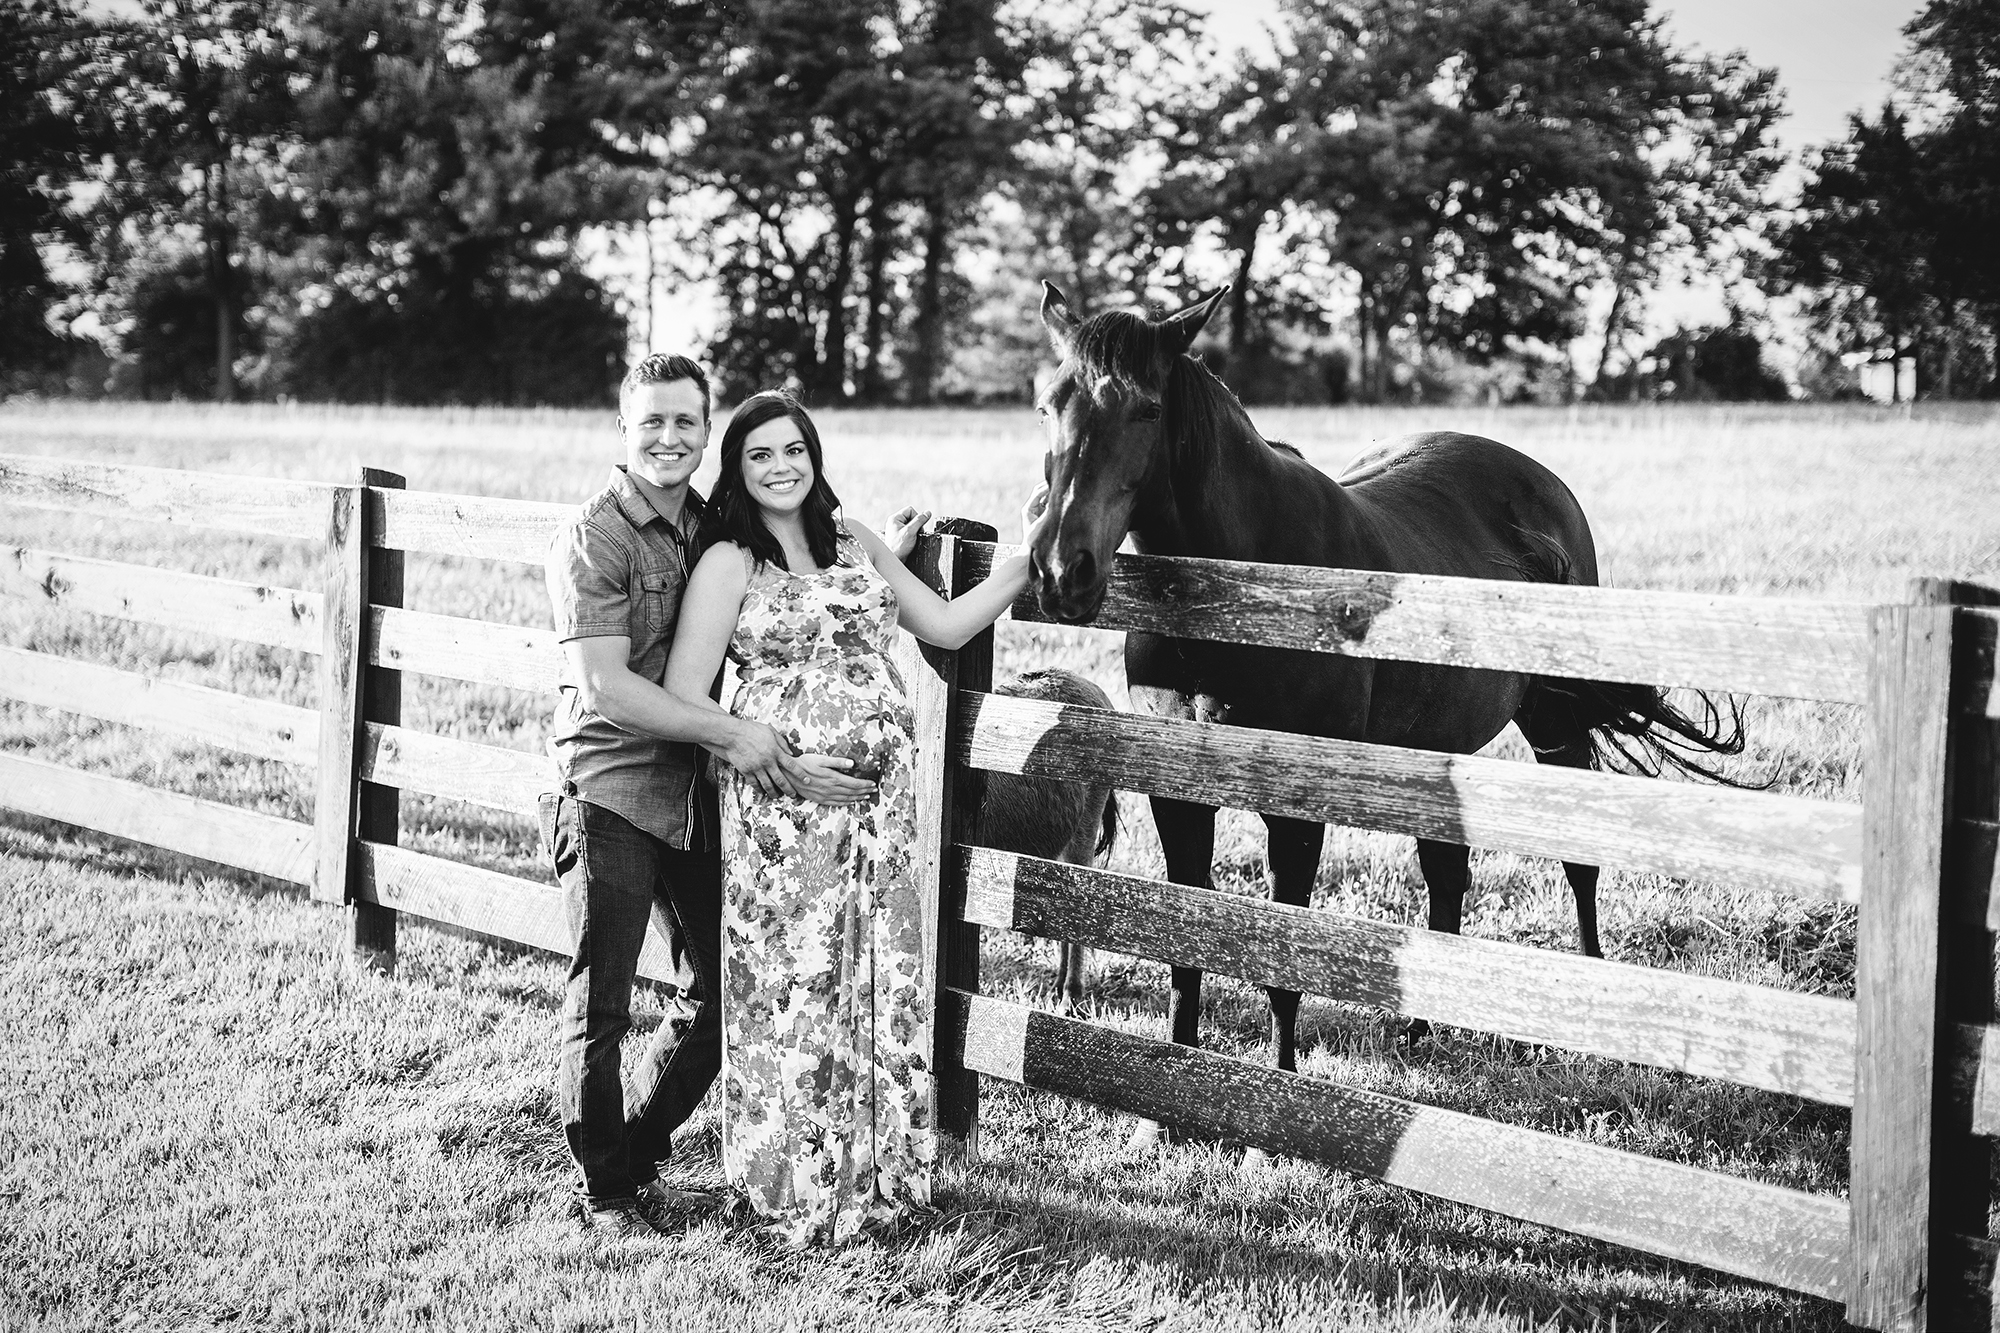 Seriously_Sabrina_Photography_Bardstown_Kentucky_Maternity_Portraits_Lee12.jpg